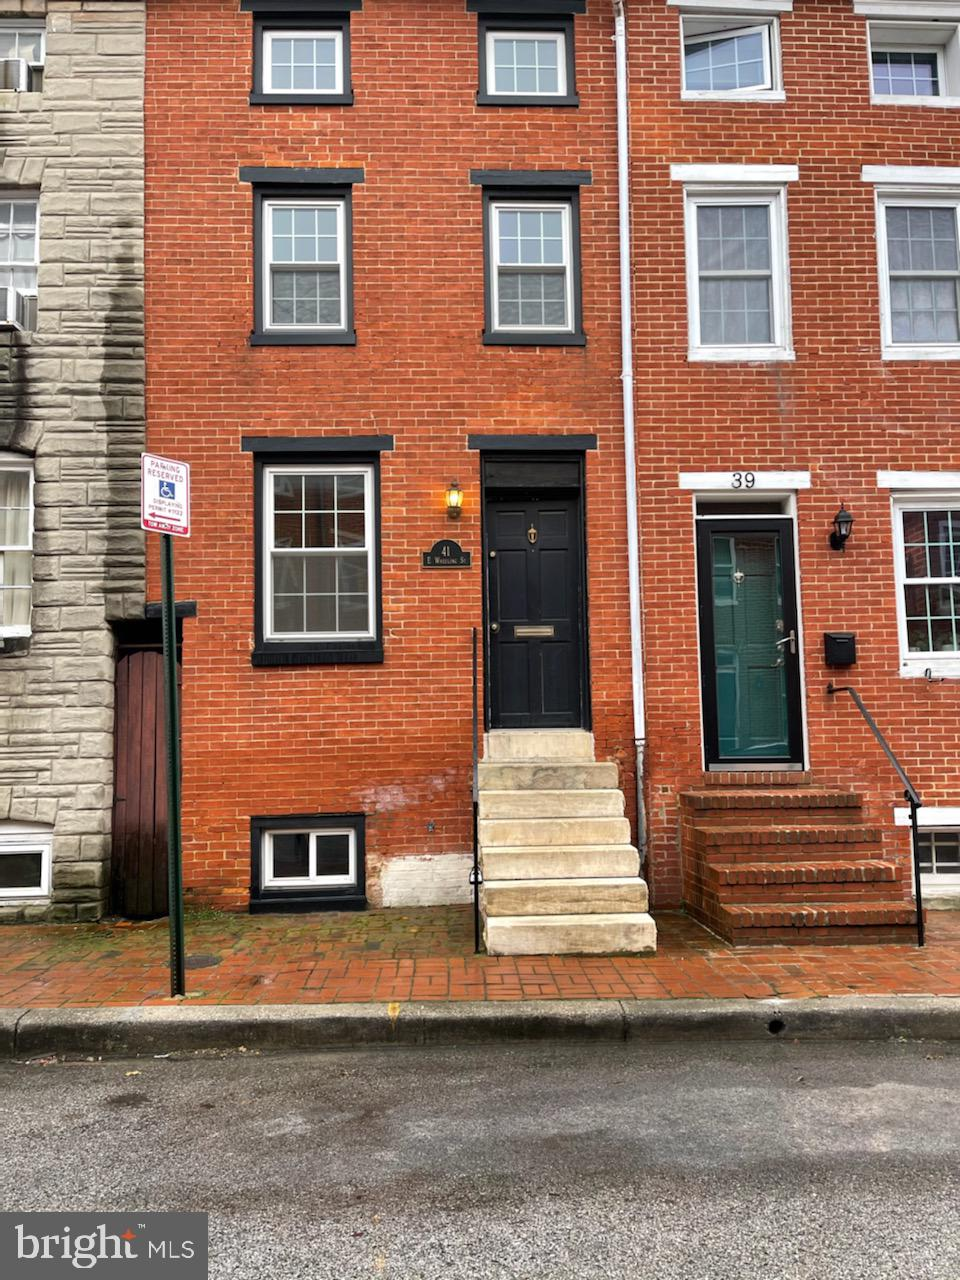 Incredible location in Federal Hill!  Live and walk to everything this wonderful Neighborhood has to offer!  Live steps from the Cross Street Market shopping district, both Raven's & Orioles stadiums, a short walk to the Inner Harbor and Federal Hill Park.  This is a 3 story home with a privately fenced rear yard & rooftop deck offering amazing City views.  Enjoy an open floor plan, wood floors, main level fireplace, 2nd floor laundry, newly installed full bathroom and a full basement offering plenty of storage.  Make your appointment today!